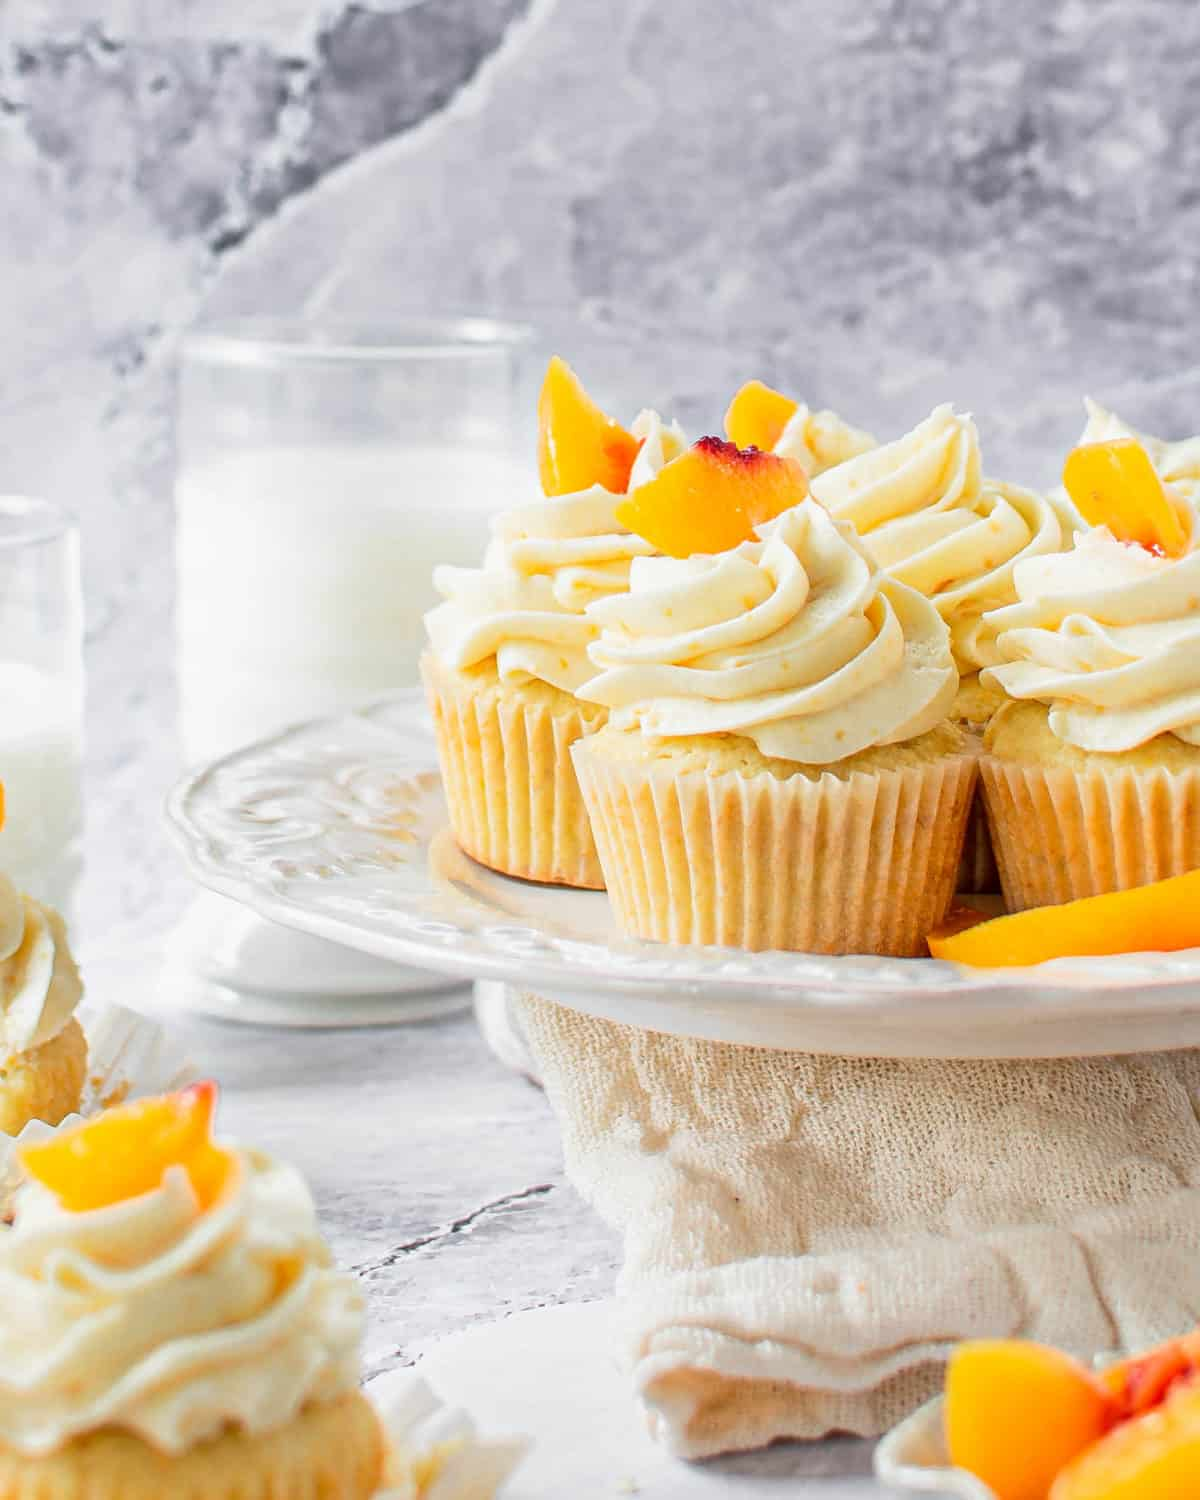 Several peach cupcakes on a cake stand.